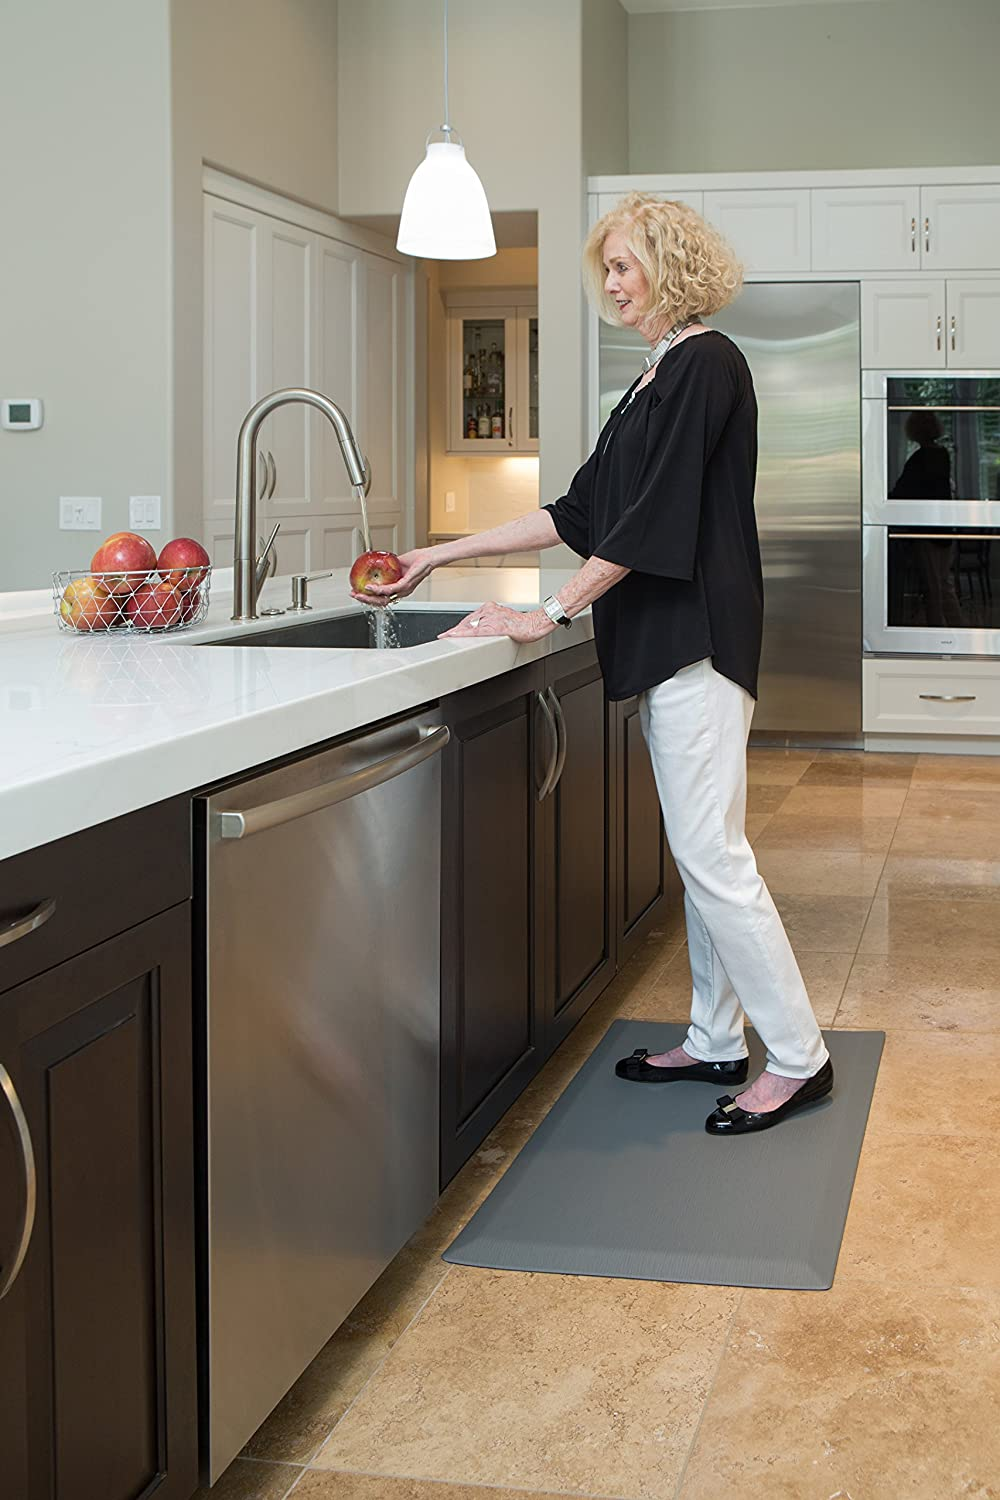 awesome home kitchen room mat mats architecture simple ideas design to with tips anti cool fatigue renovation